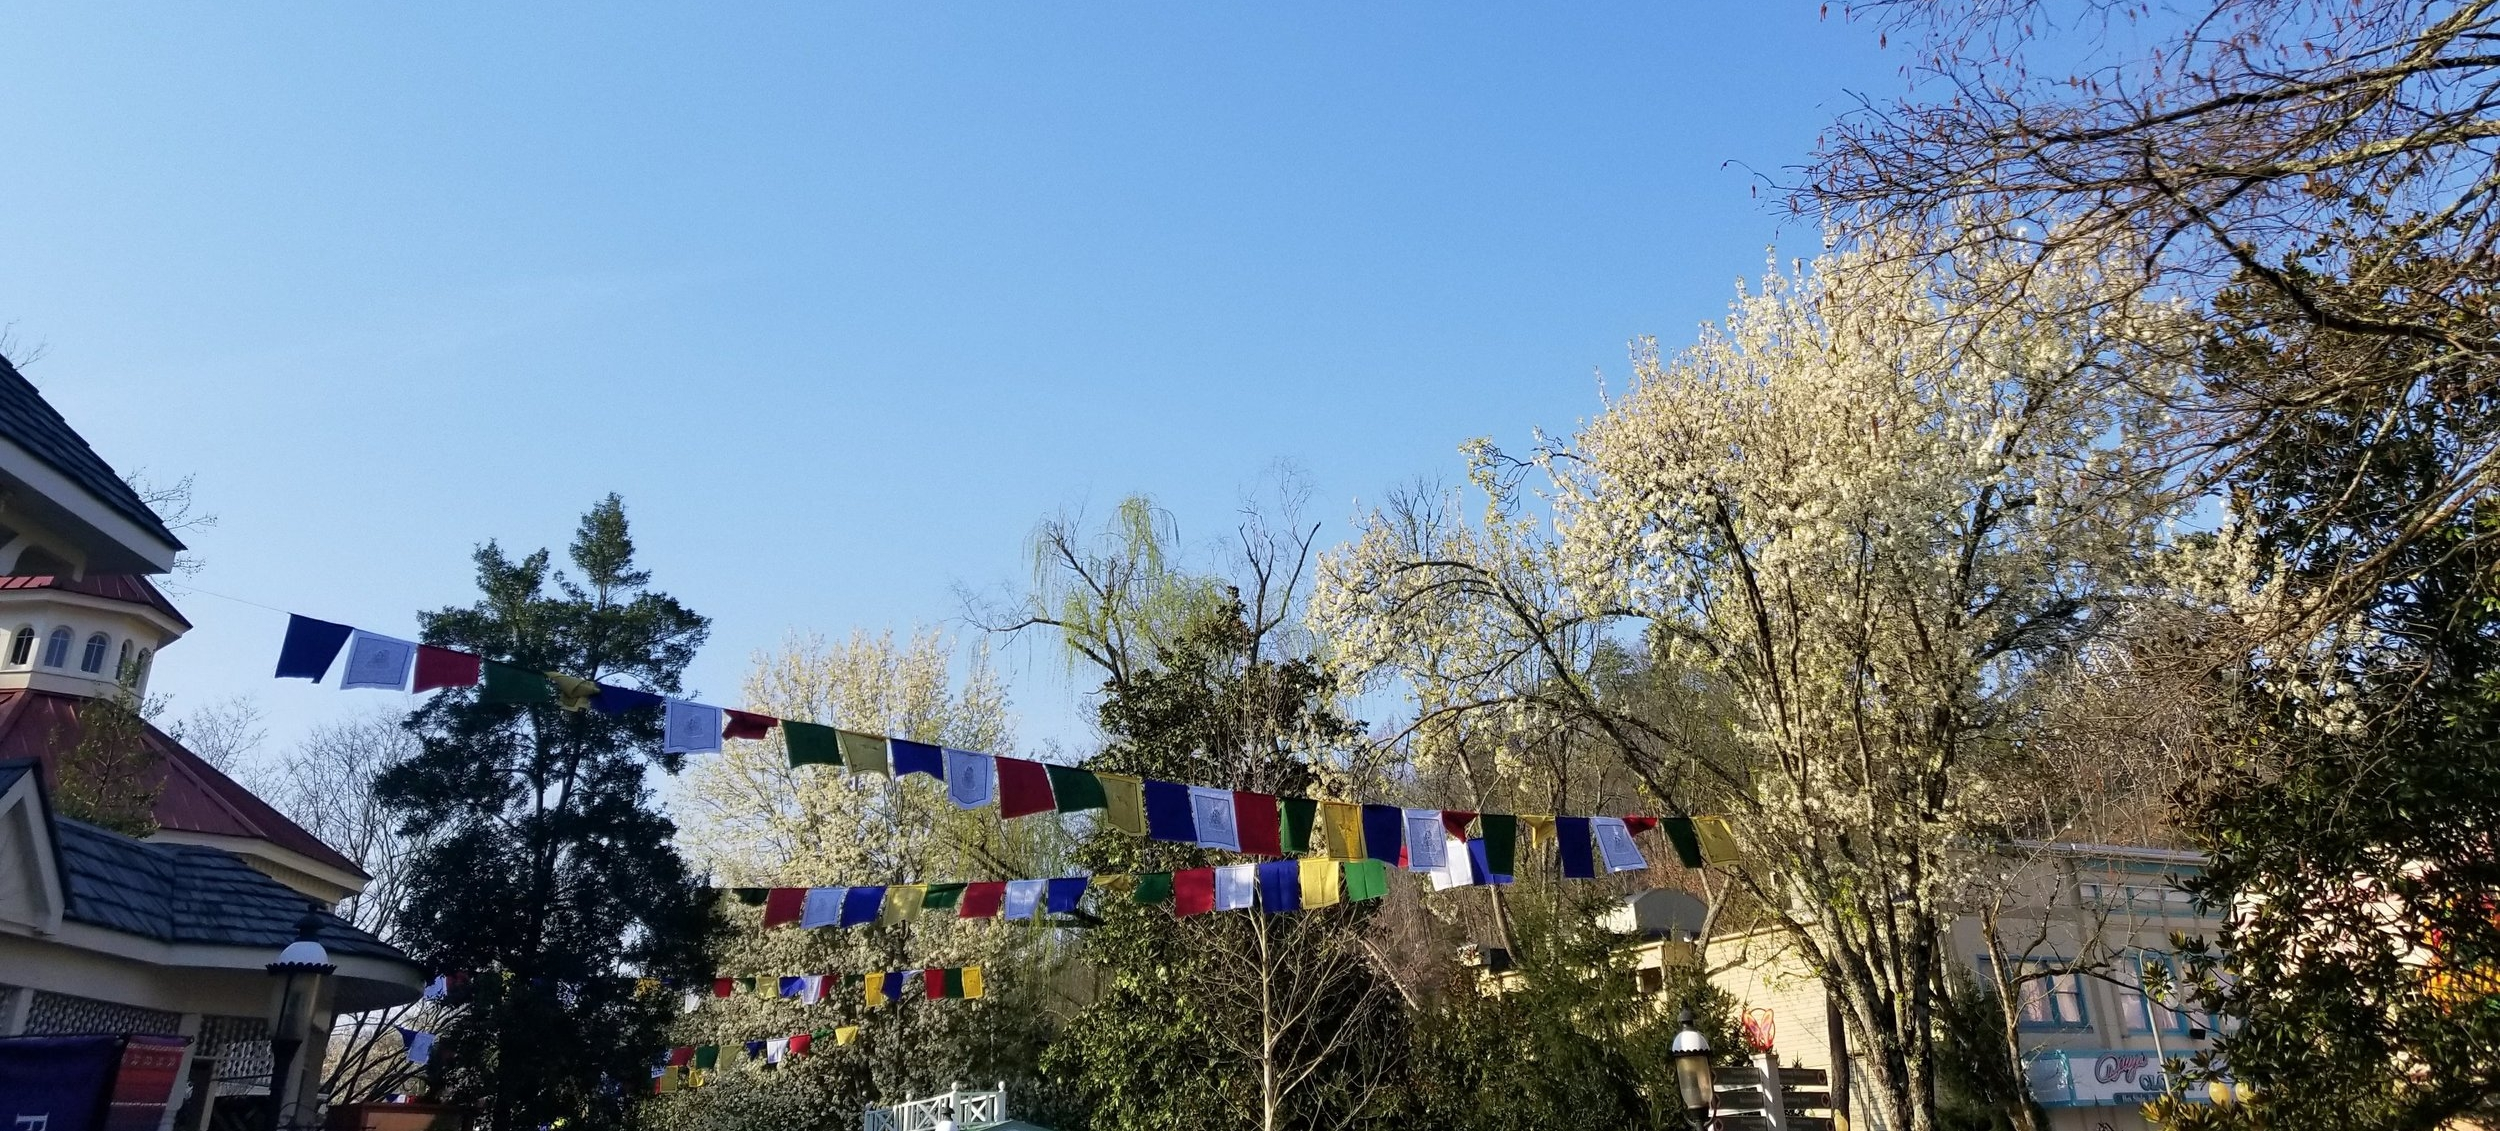 Dollywood's Festival of Nations runs through April 9th